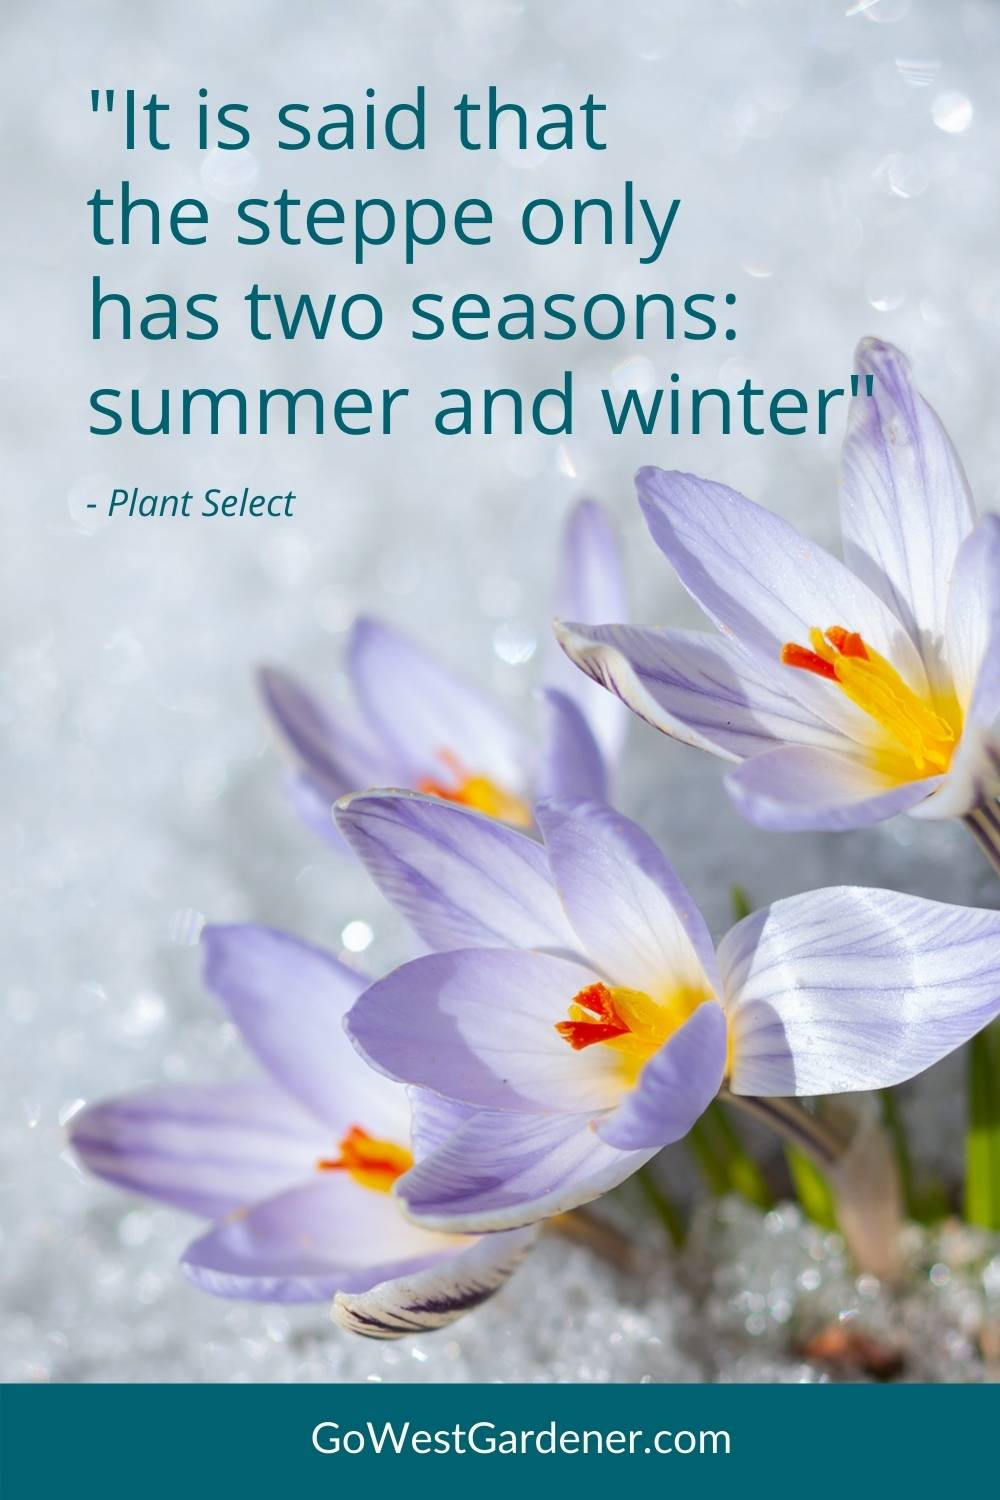 """Quotes for gardeners: """"It is said that the steppe only has two seasons: summer and winter."""" - Plant Select"""